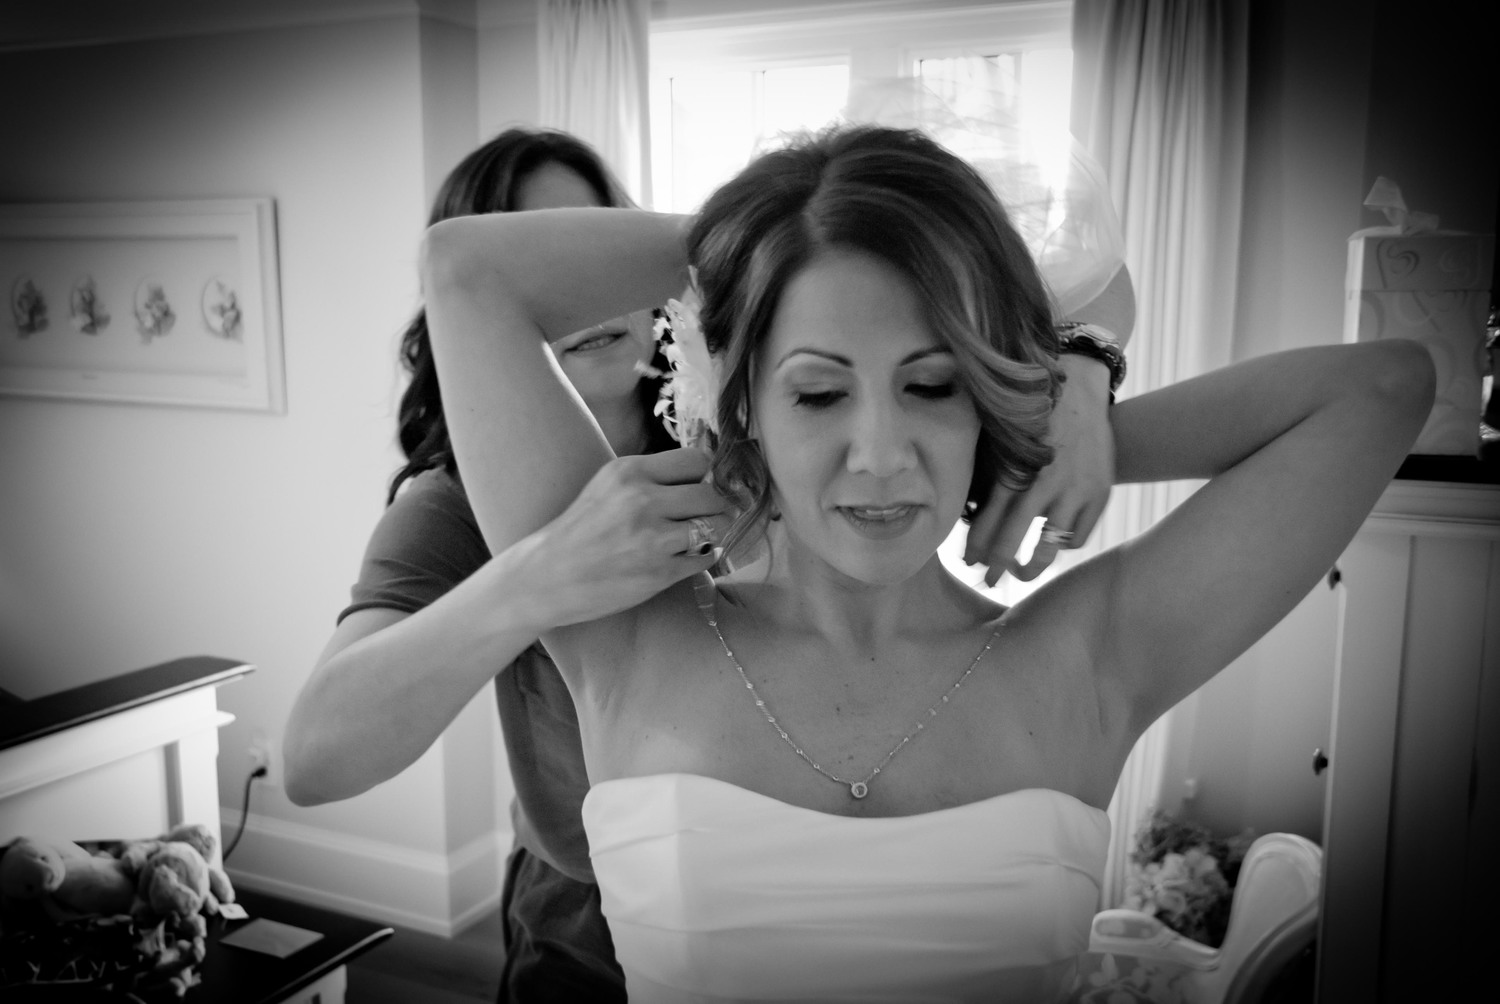 Best Friend Helps Bride Get Ready for Ontario Wedding